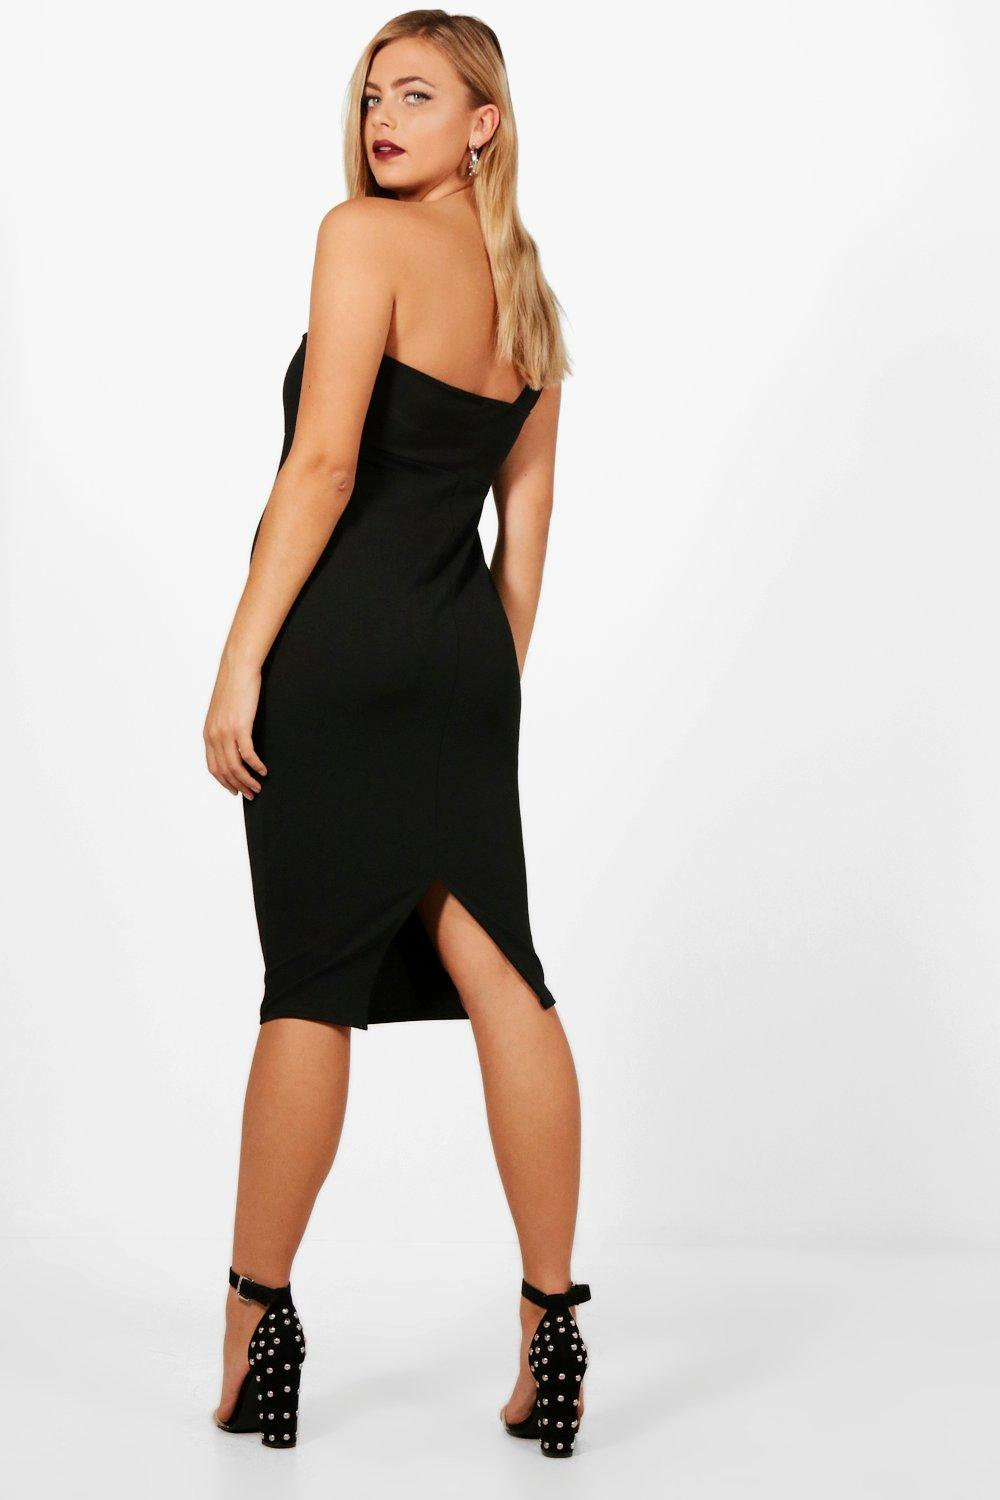 Boohoo-Maternity-Nina-One-Shoulder-Plunge-Neck-Midi-Dress-para-Mujer